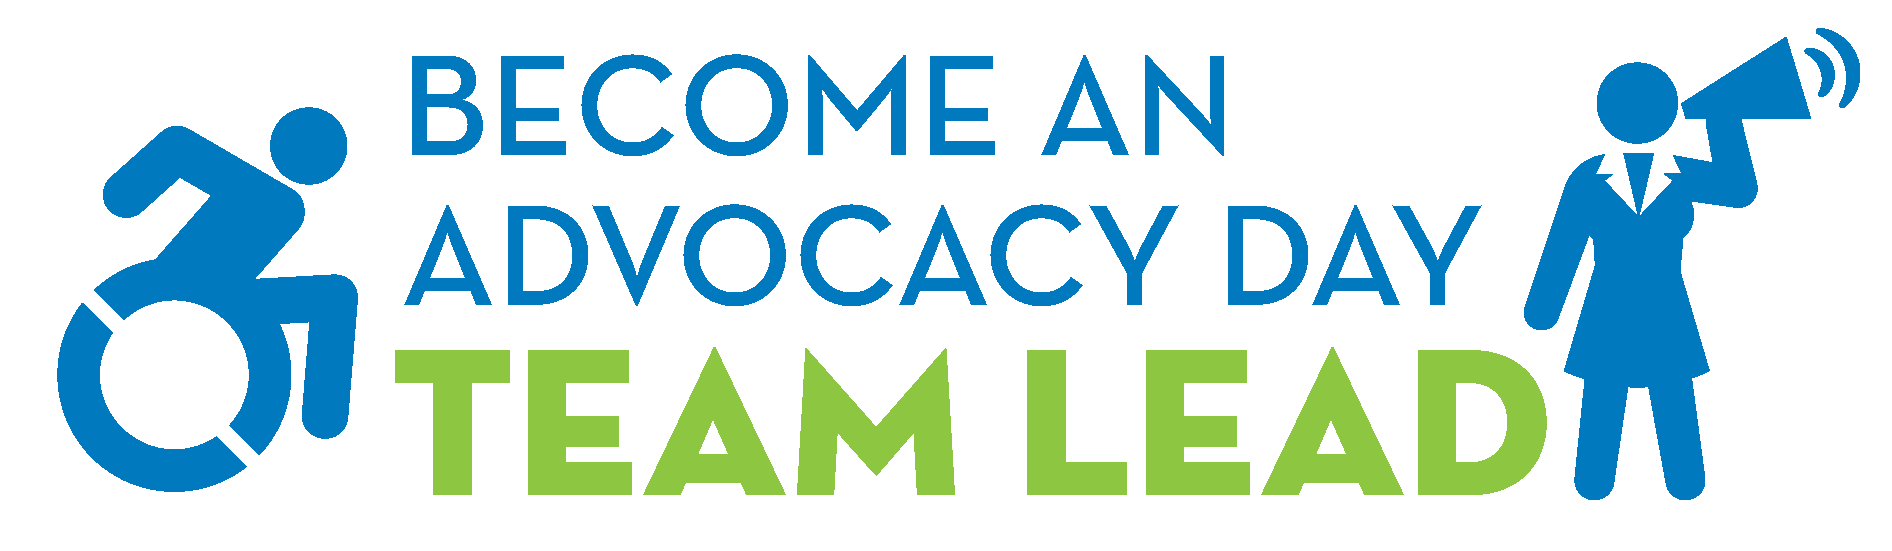 Become an Advocacy Day Team Lead!